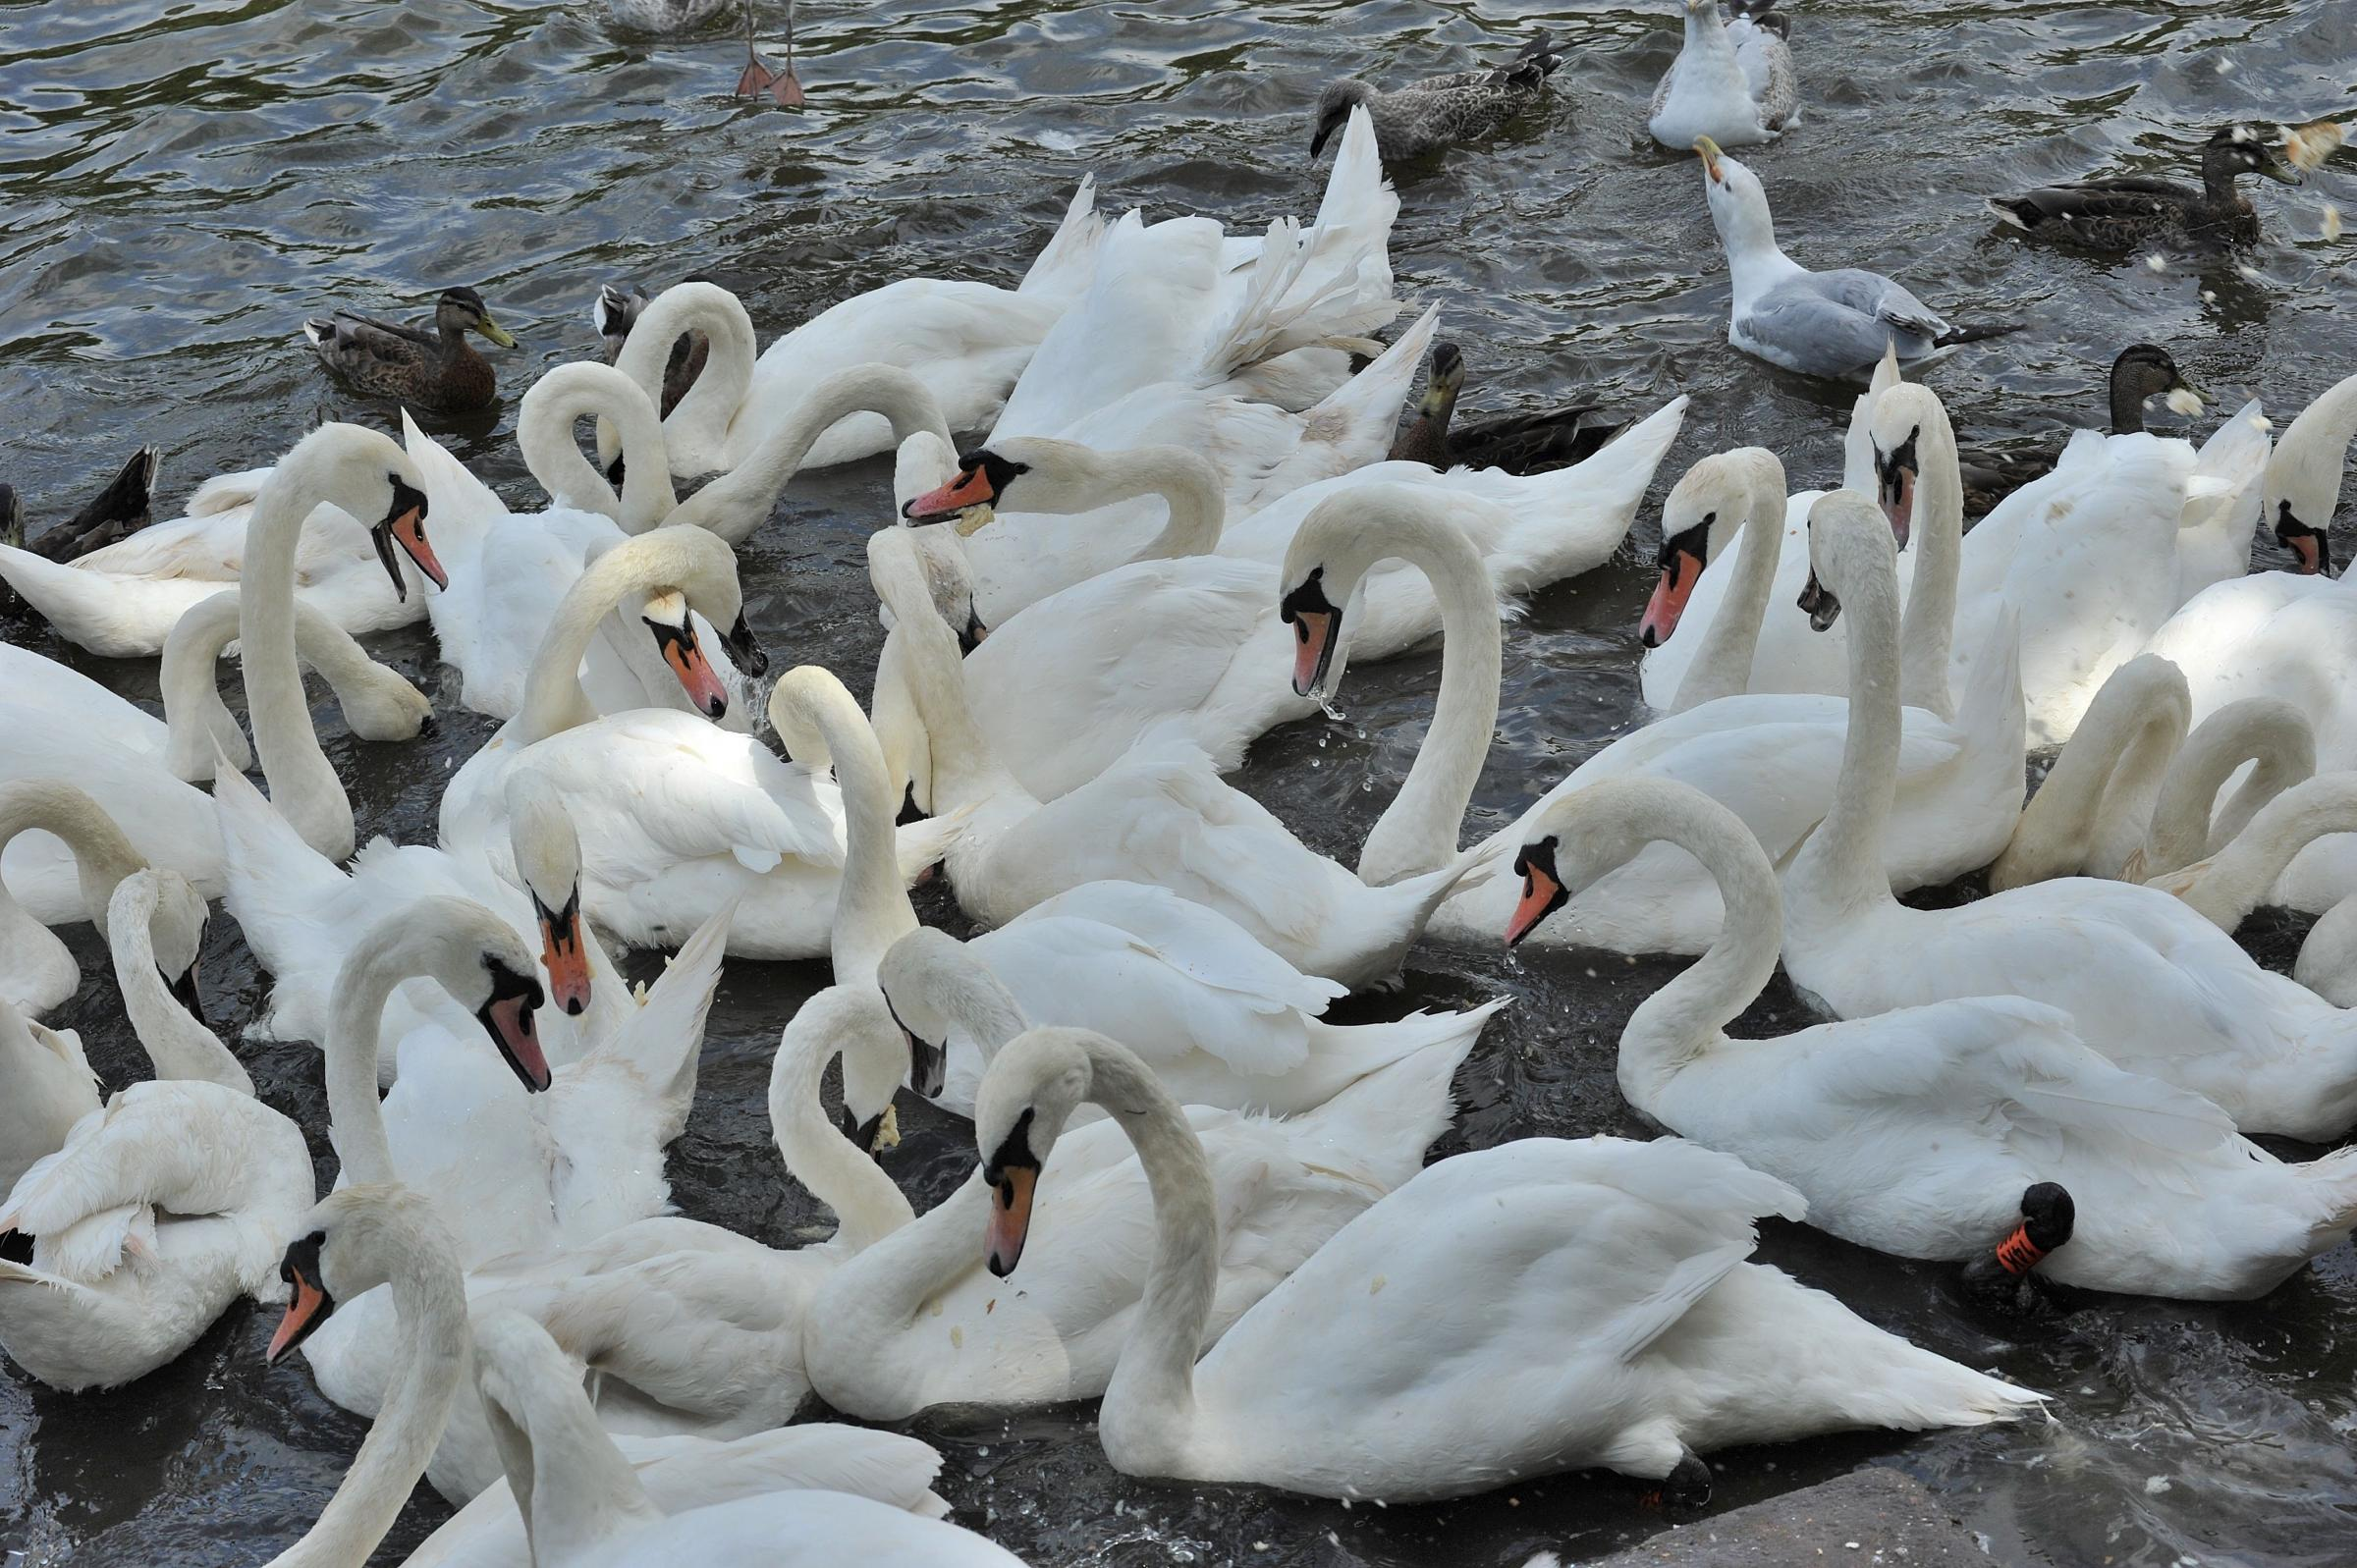 Don't wing it with bread - give the swans something nutritious